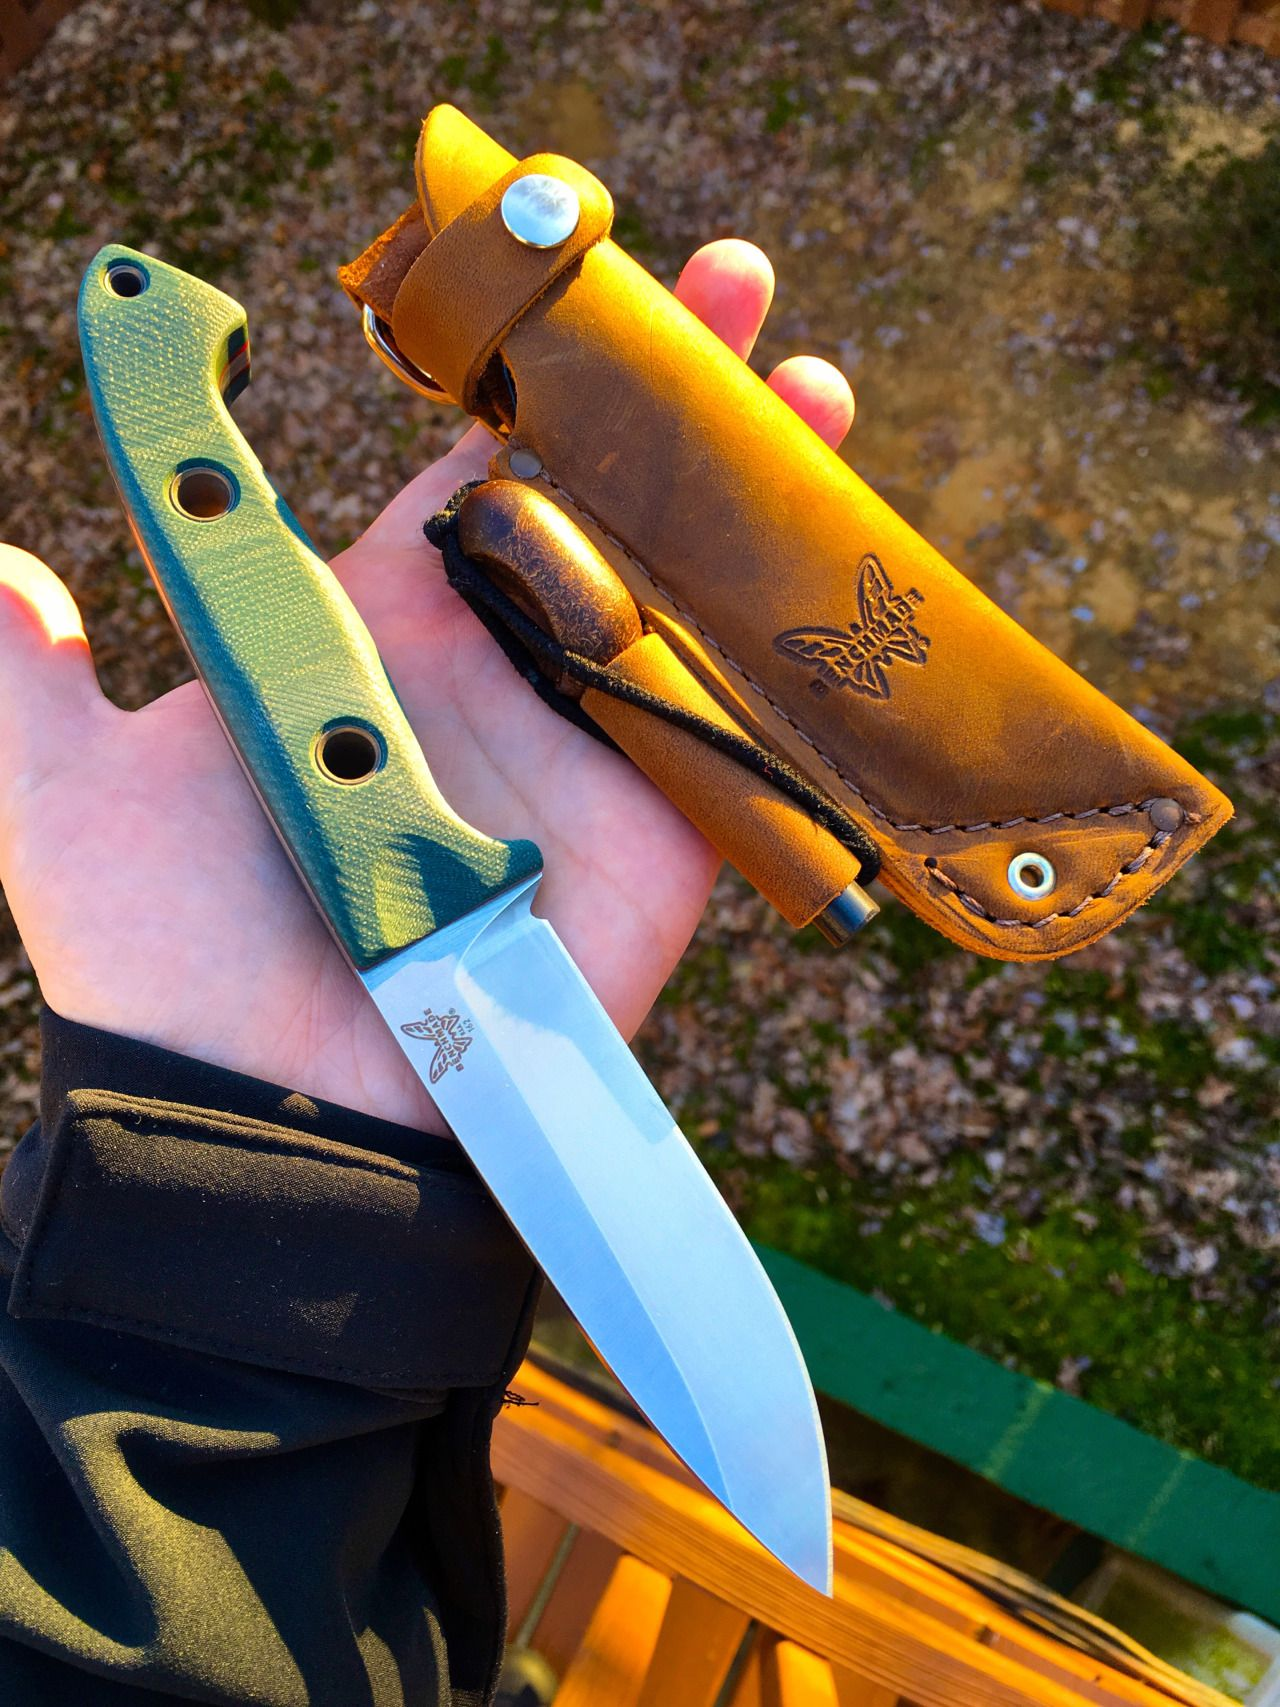 benchmade bushcrafter bushcraft pinterest knives bushcraft